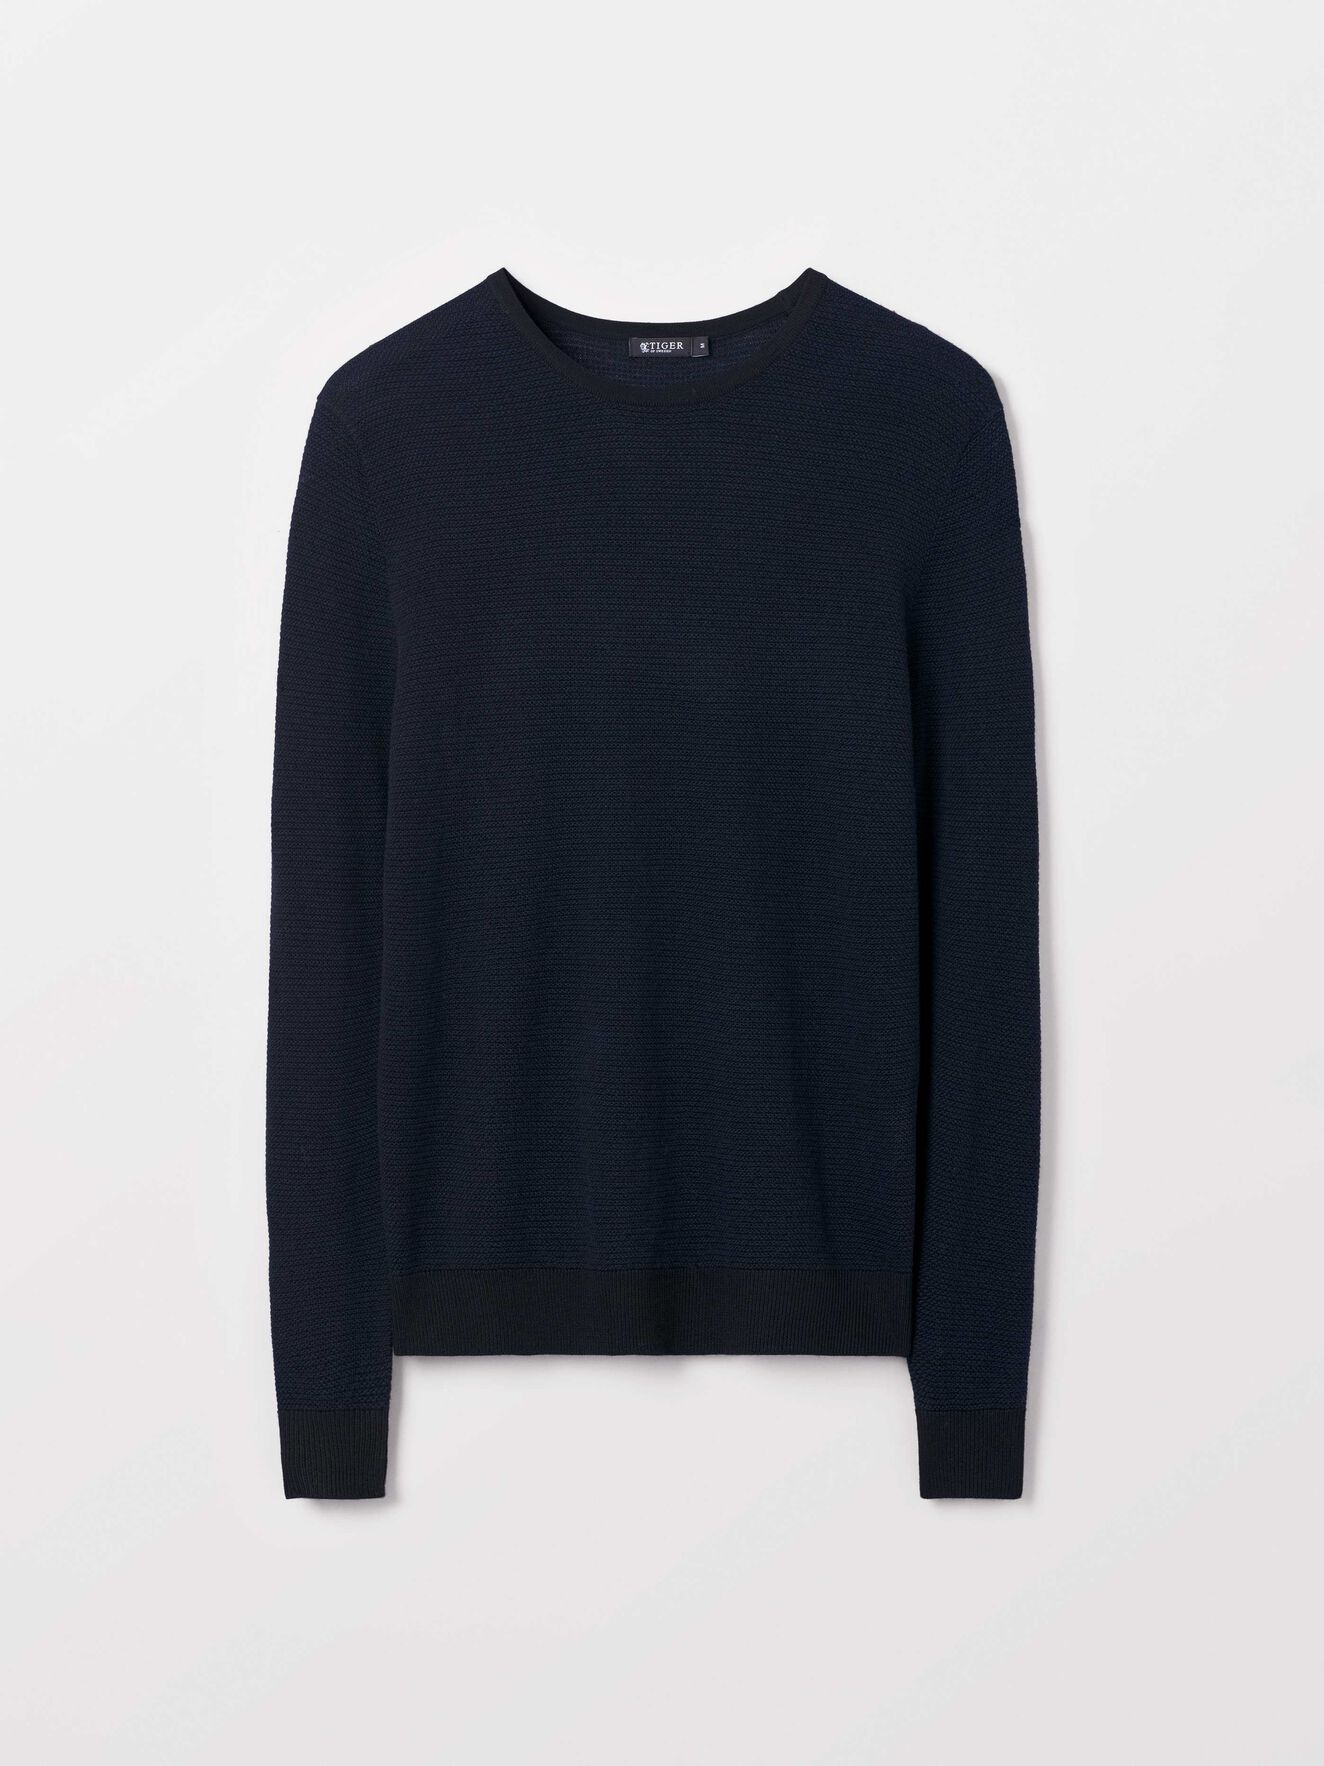 Nawaro Pullover in Black from Tiger of Sweden